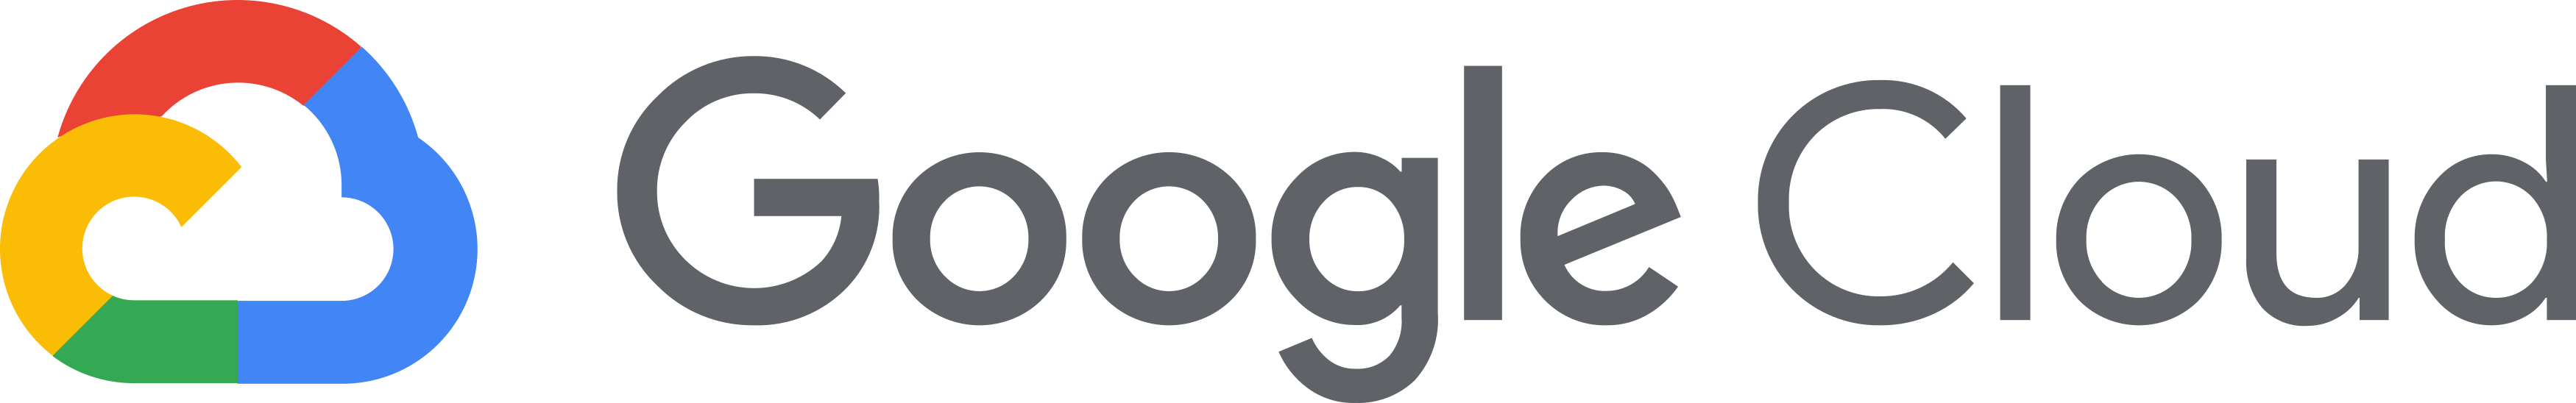 Google Cloud Logo.